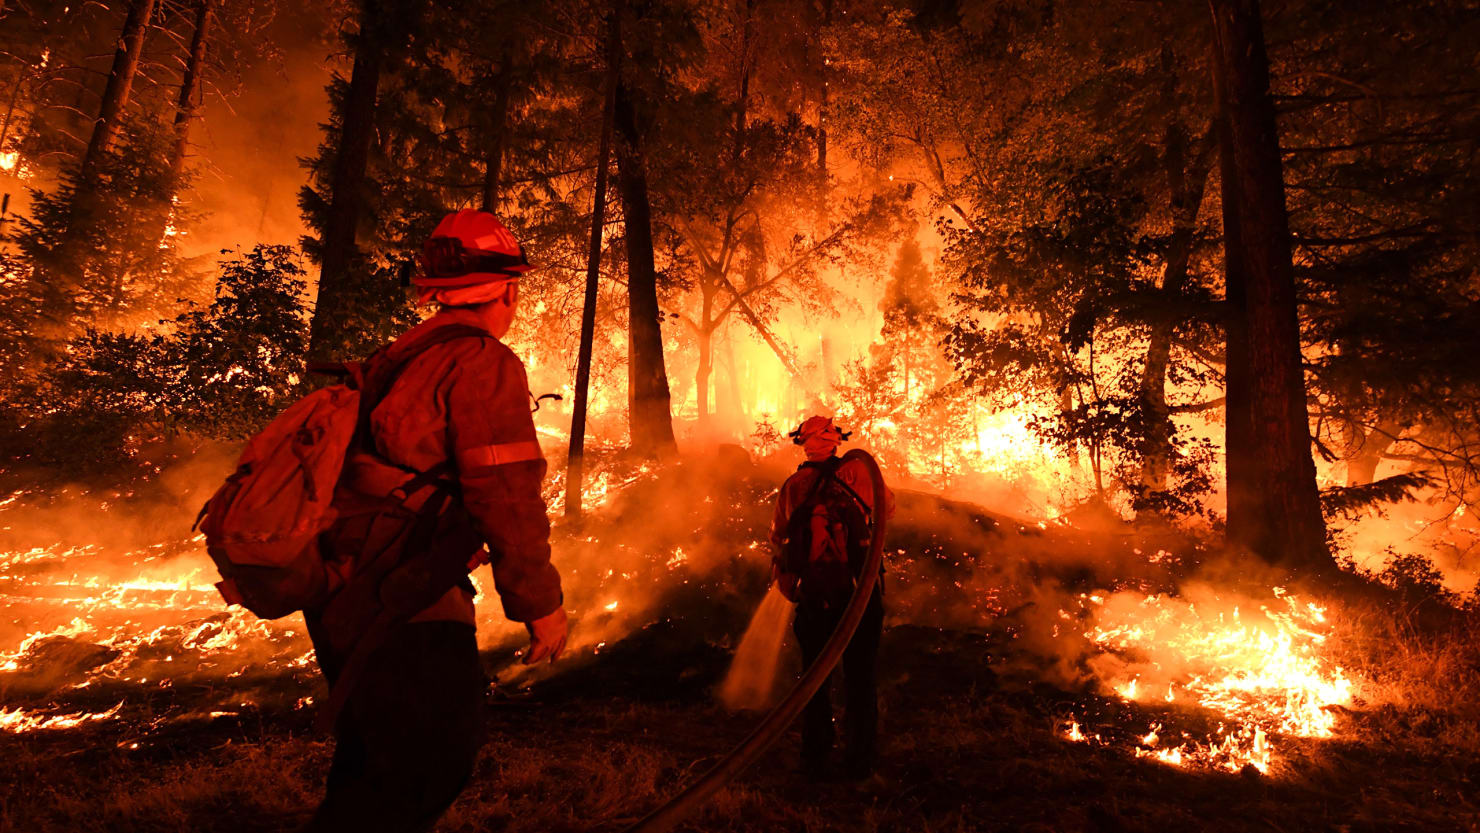 california wildfire cascades mendocino complex fire carr respiratory cardiovascular asthma emphysema breathing problems lungs hurt